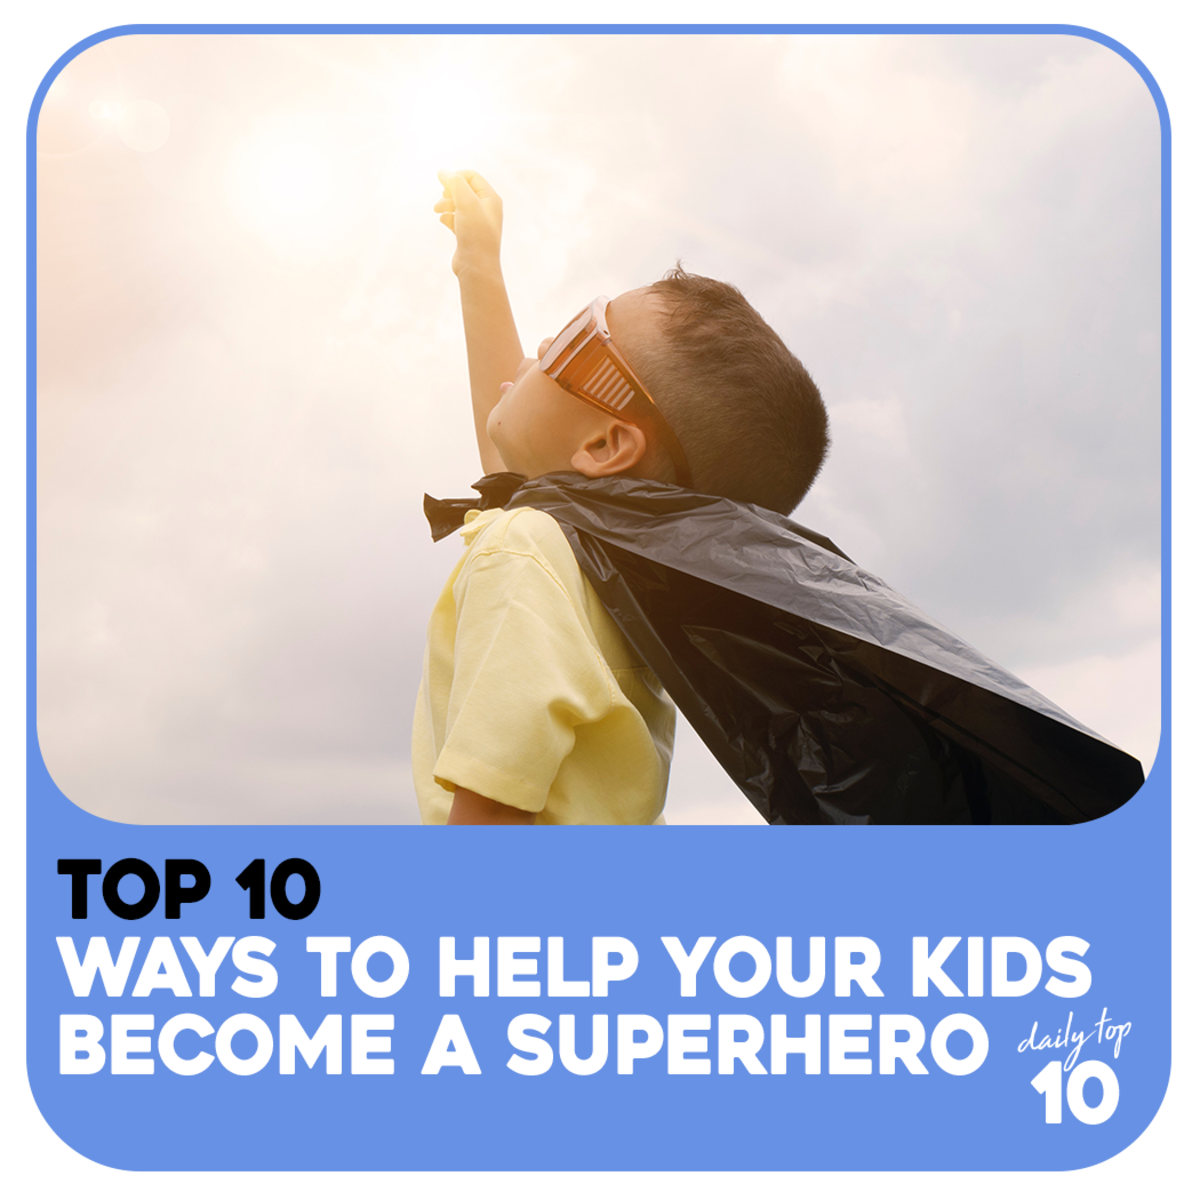 Top 10 Ways to Help Your Kids Become a Superhero Like Batman and Superman